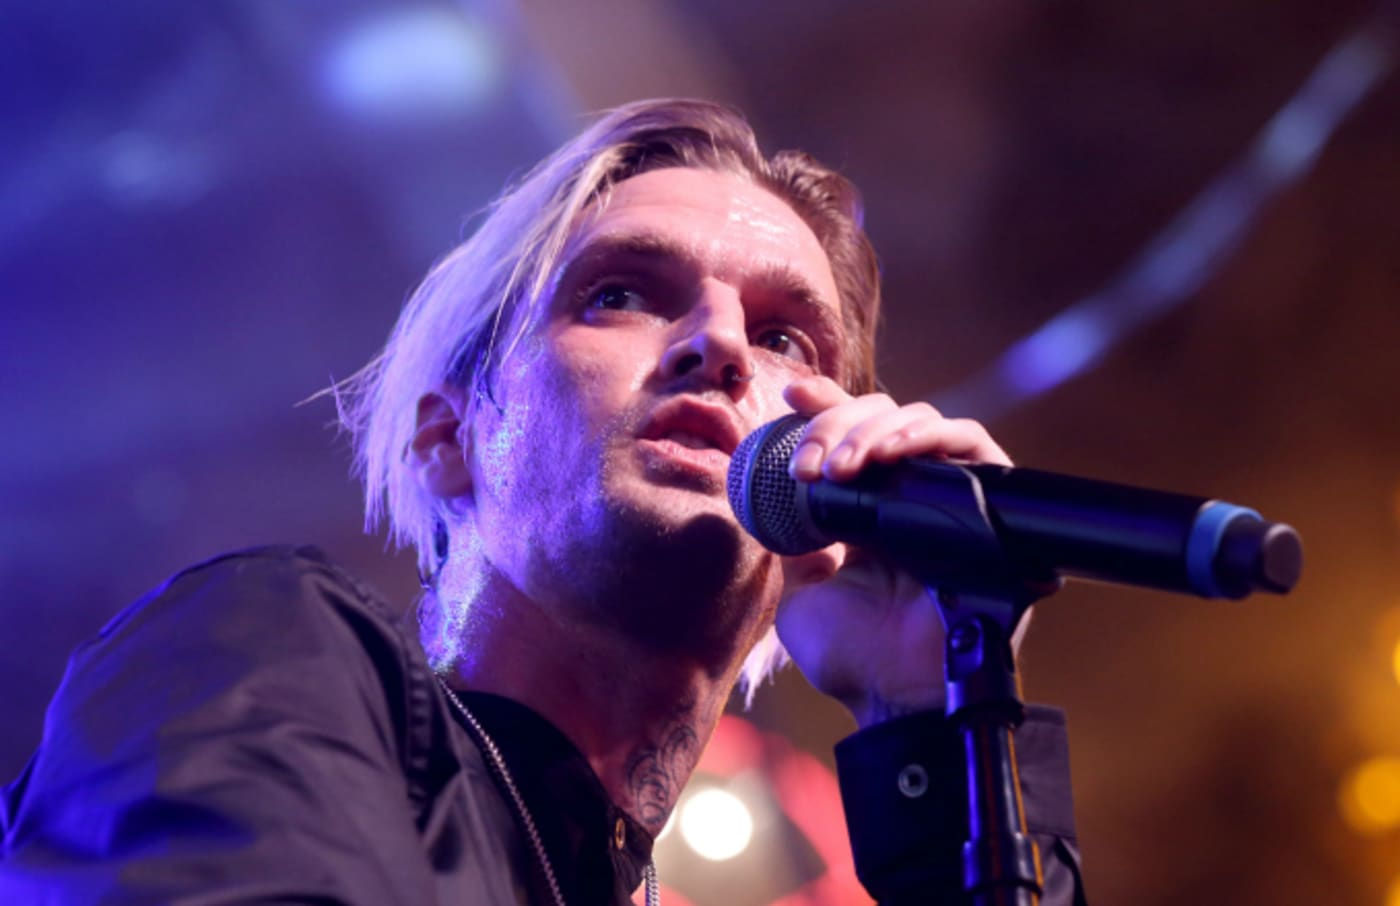 Singer and producer Aaron Carter performs